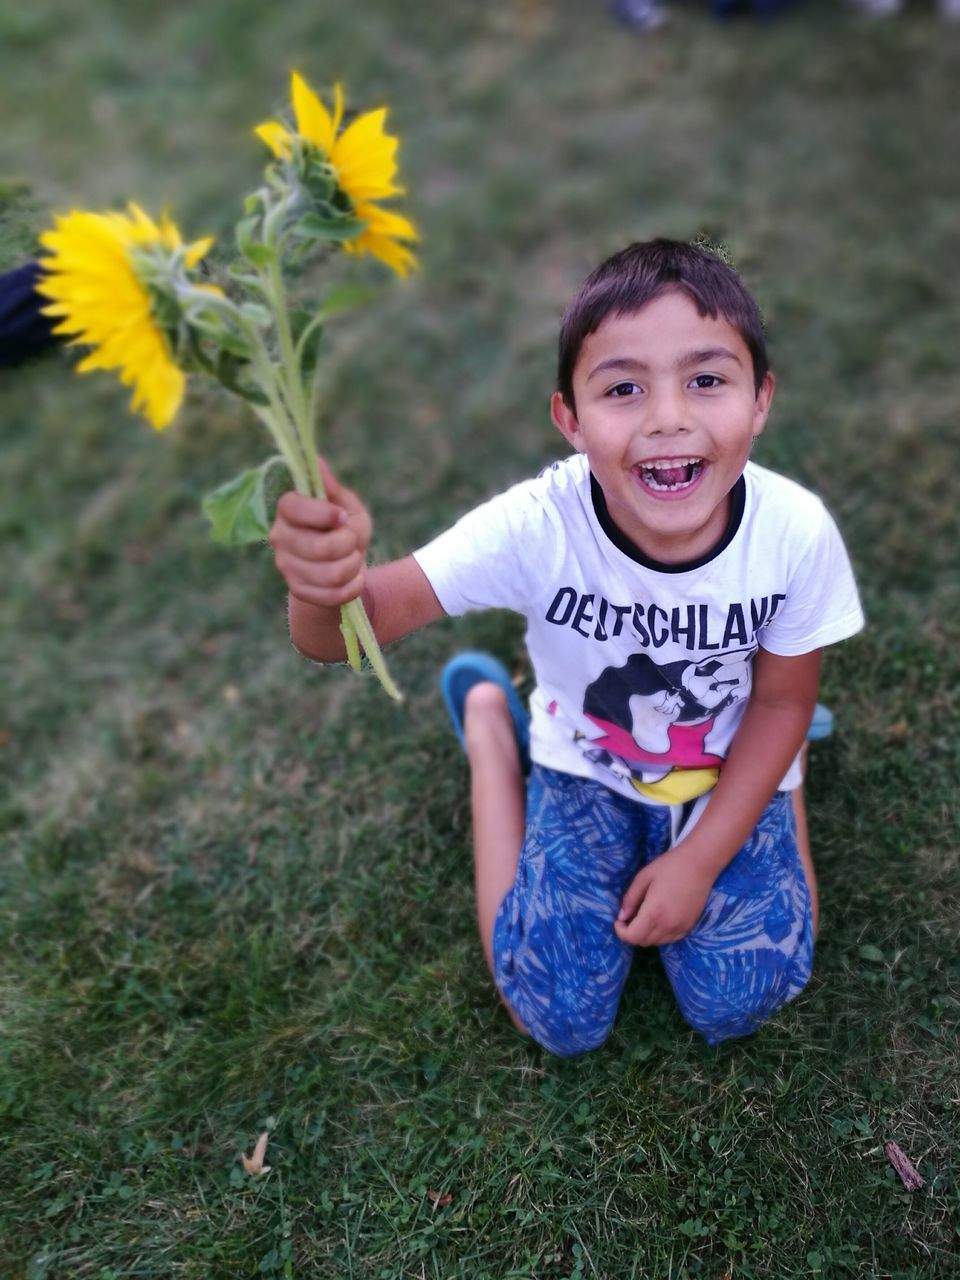 flower, childhood, one person, real people, looking at camera, girls, smiling, field, front view, portrait, happiness, casual clothing, holding, elementary age, child, lifestyles, boys, day, leisure activity, outdoors, cheerful, grass, nature, growth, freshness, fragility, human hand, people